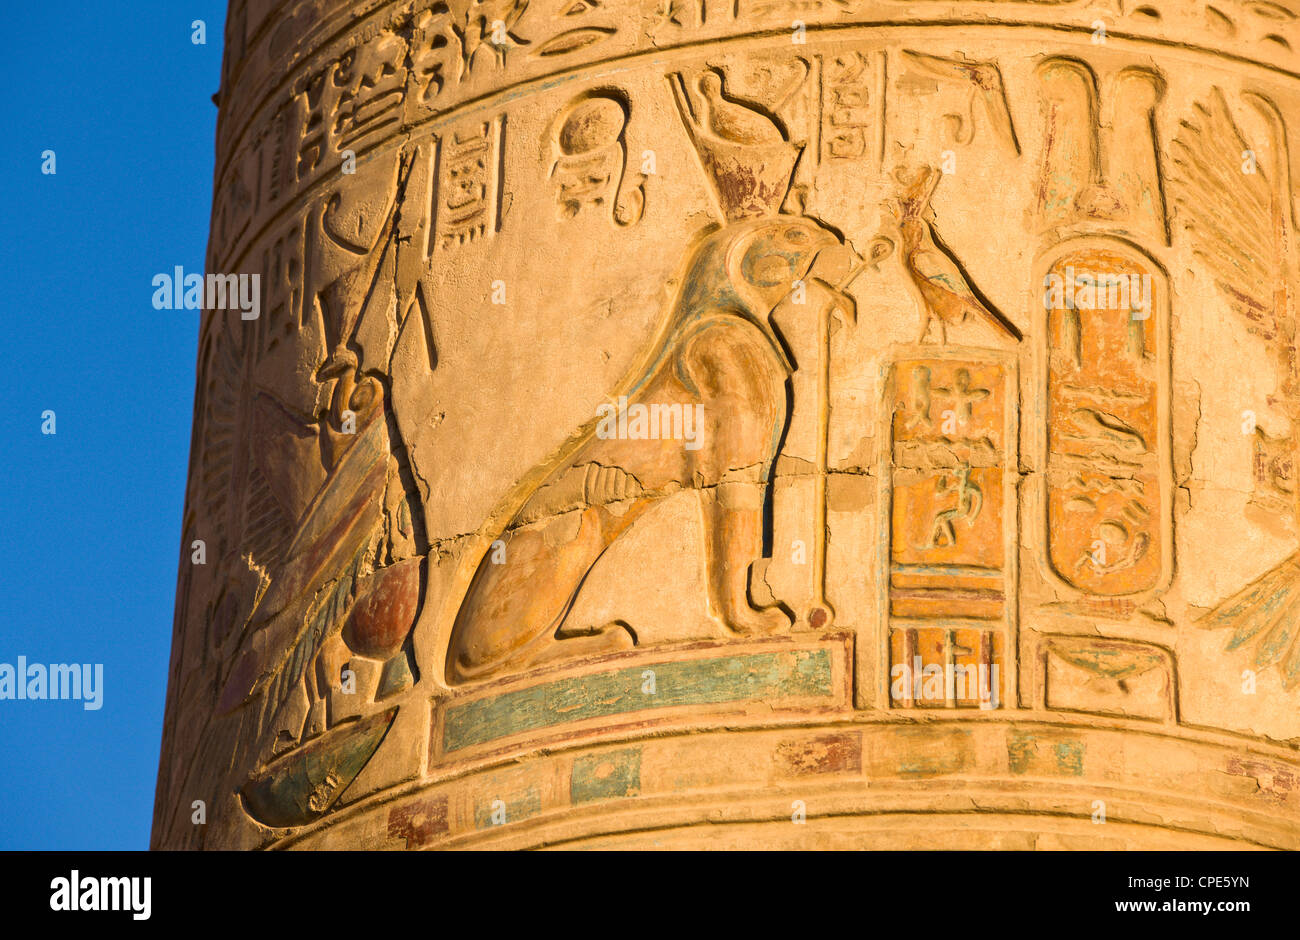 Painted pillar at the Temple of Sobek and Haroeris, Kom Ombo, Egypt, North Africa, Africa Stock Photo